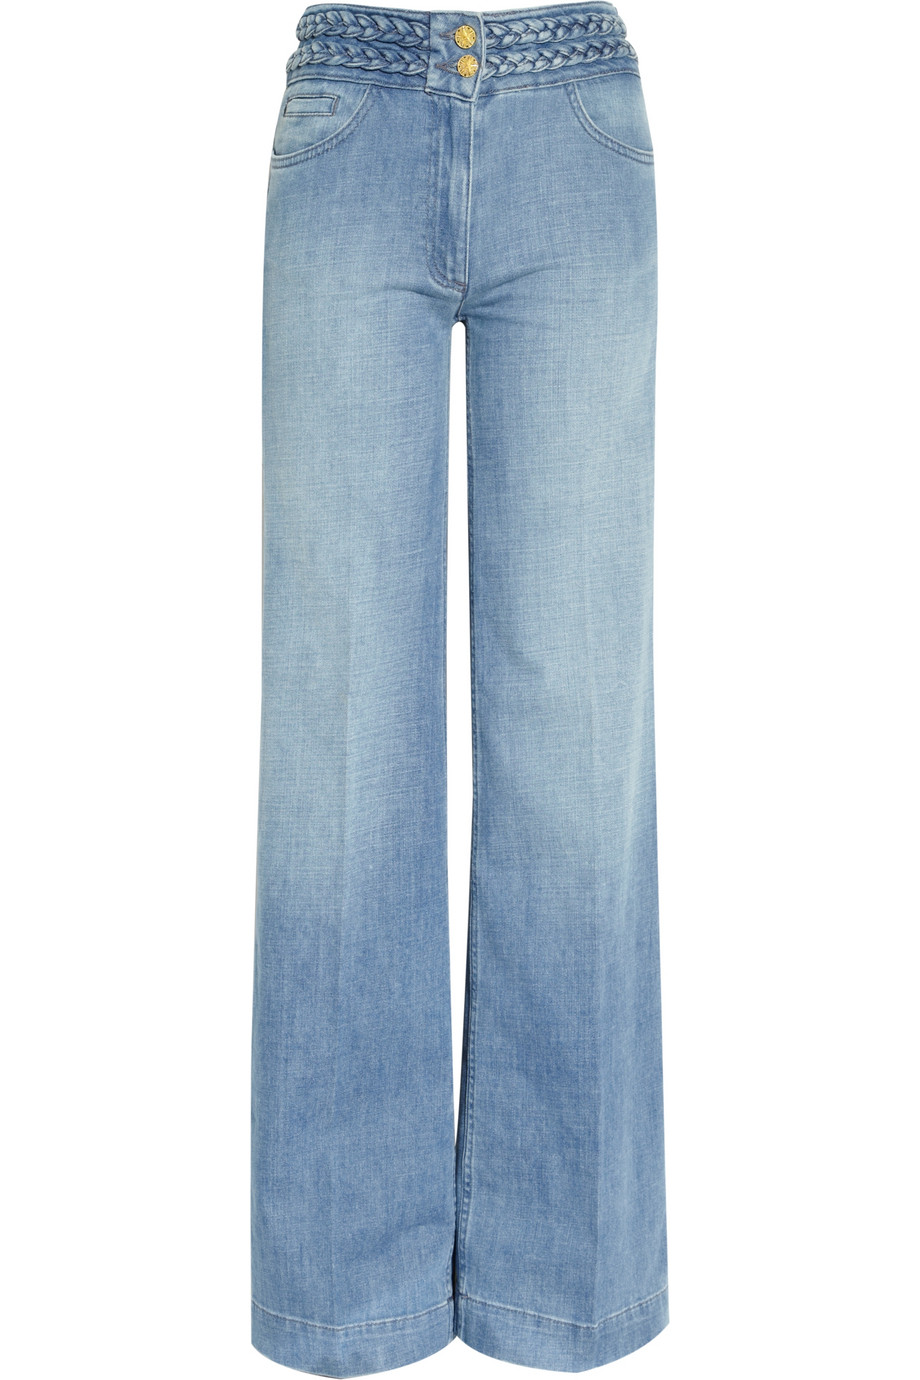 Sandro Pop High-rise Wide-leg Jeans in Blue | Lyst